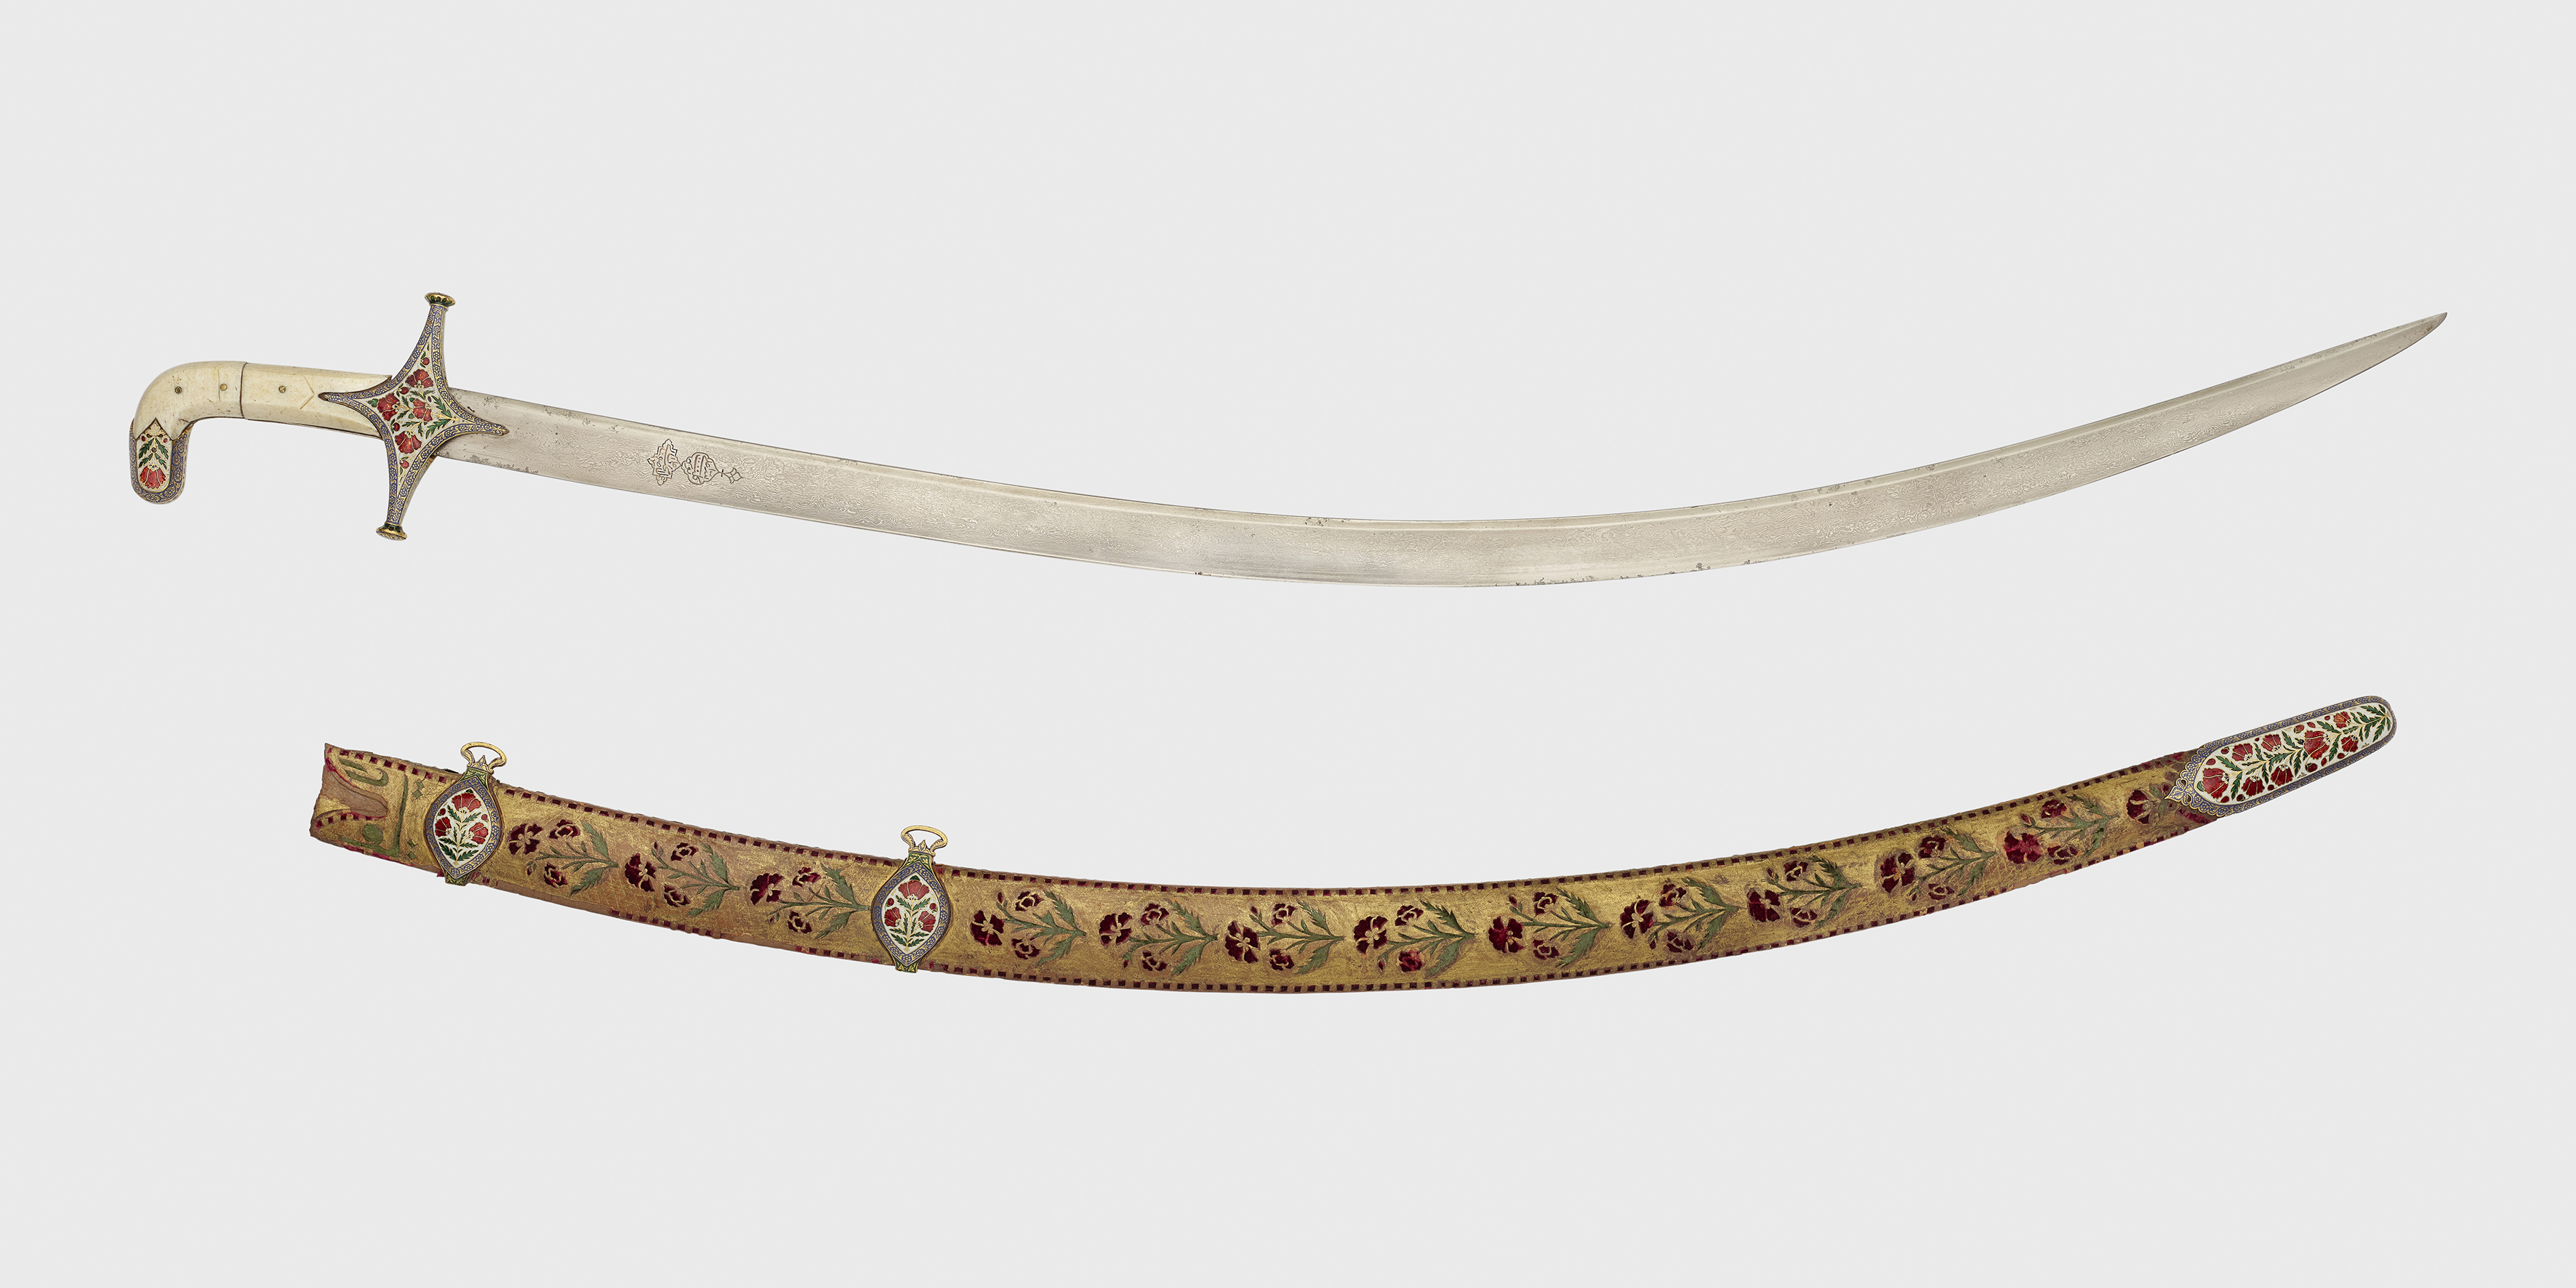 Persian sword (shamsir) and scabbard, c.1800